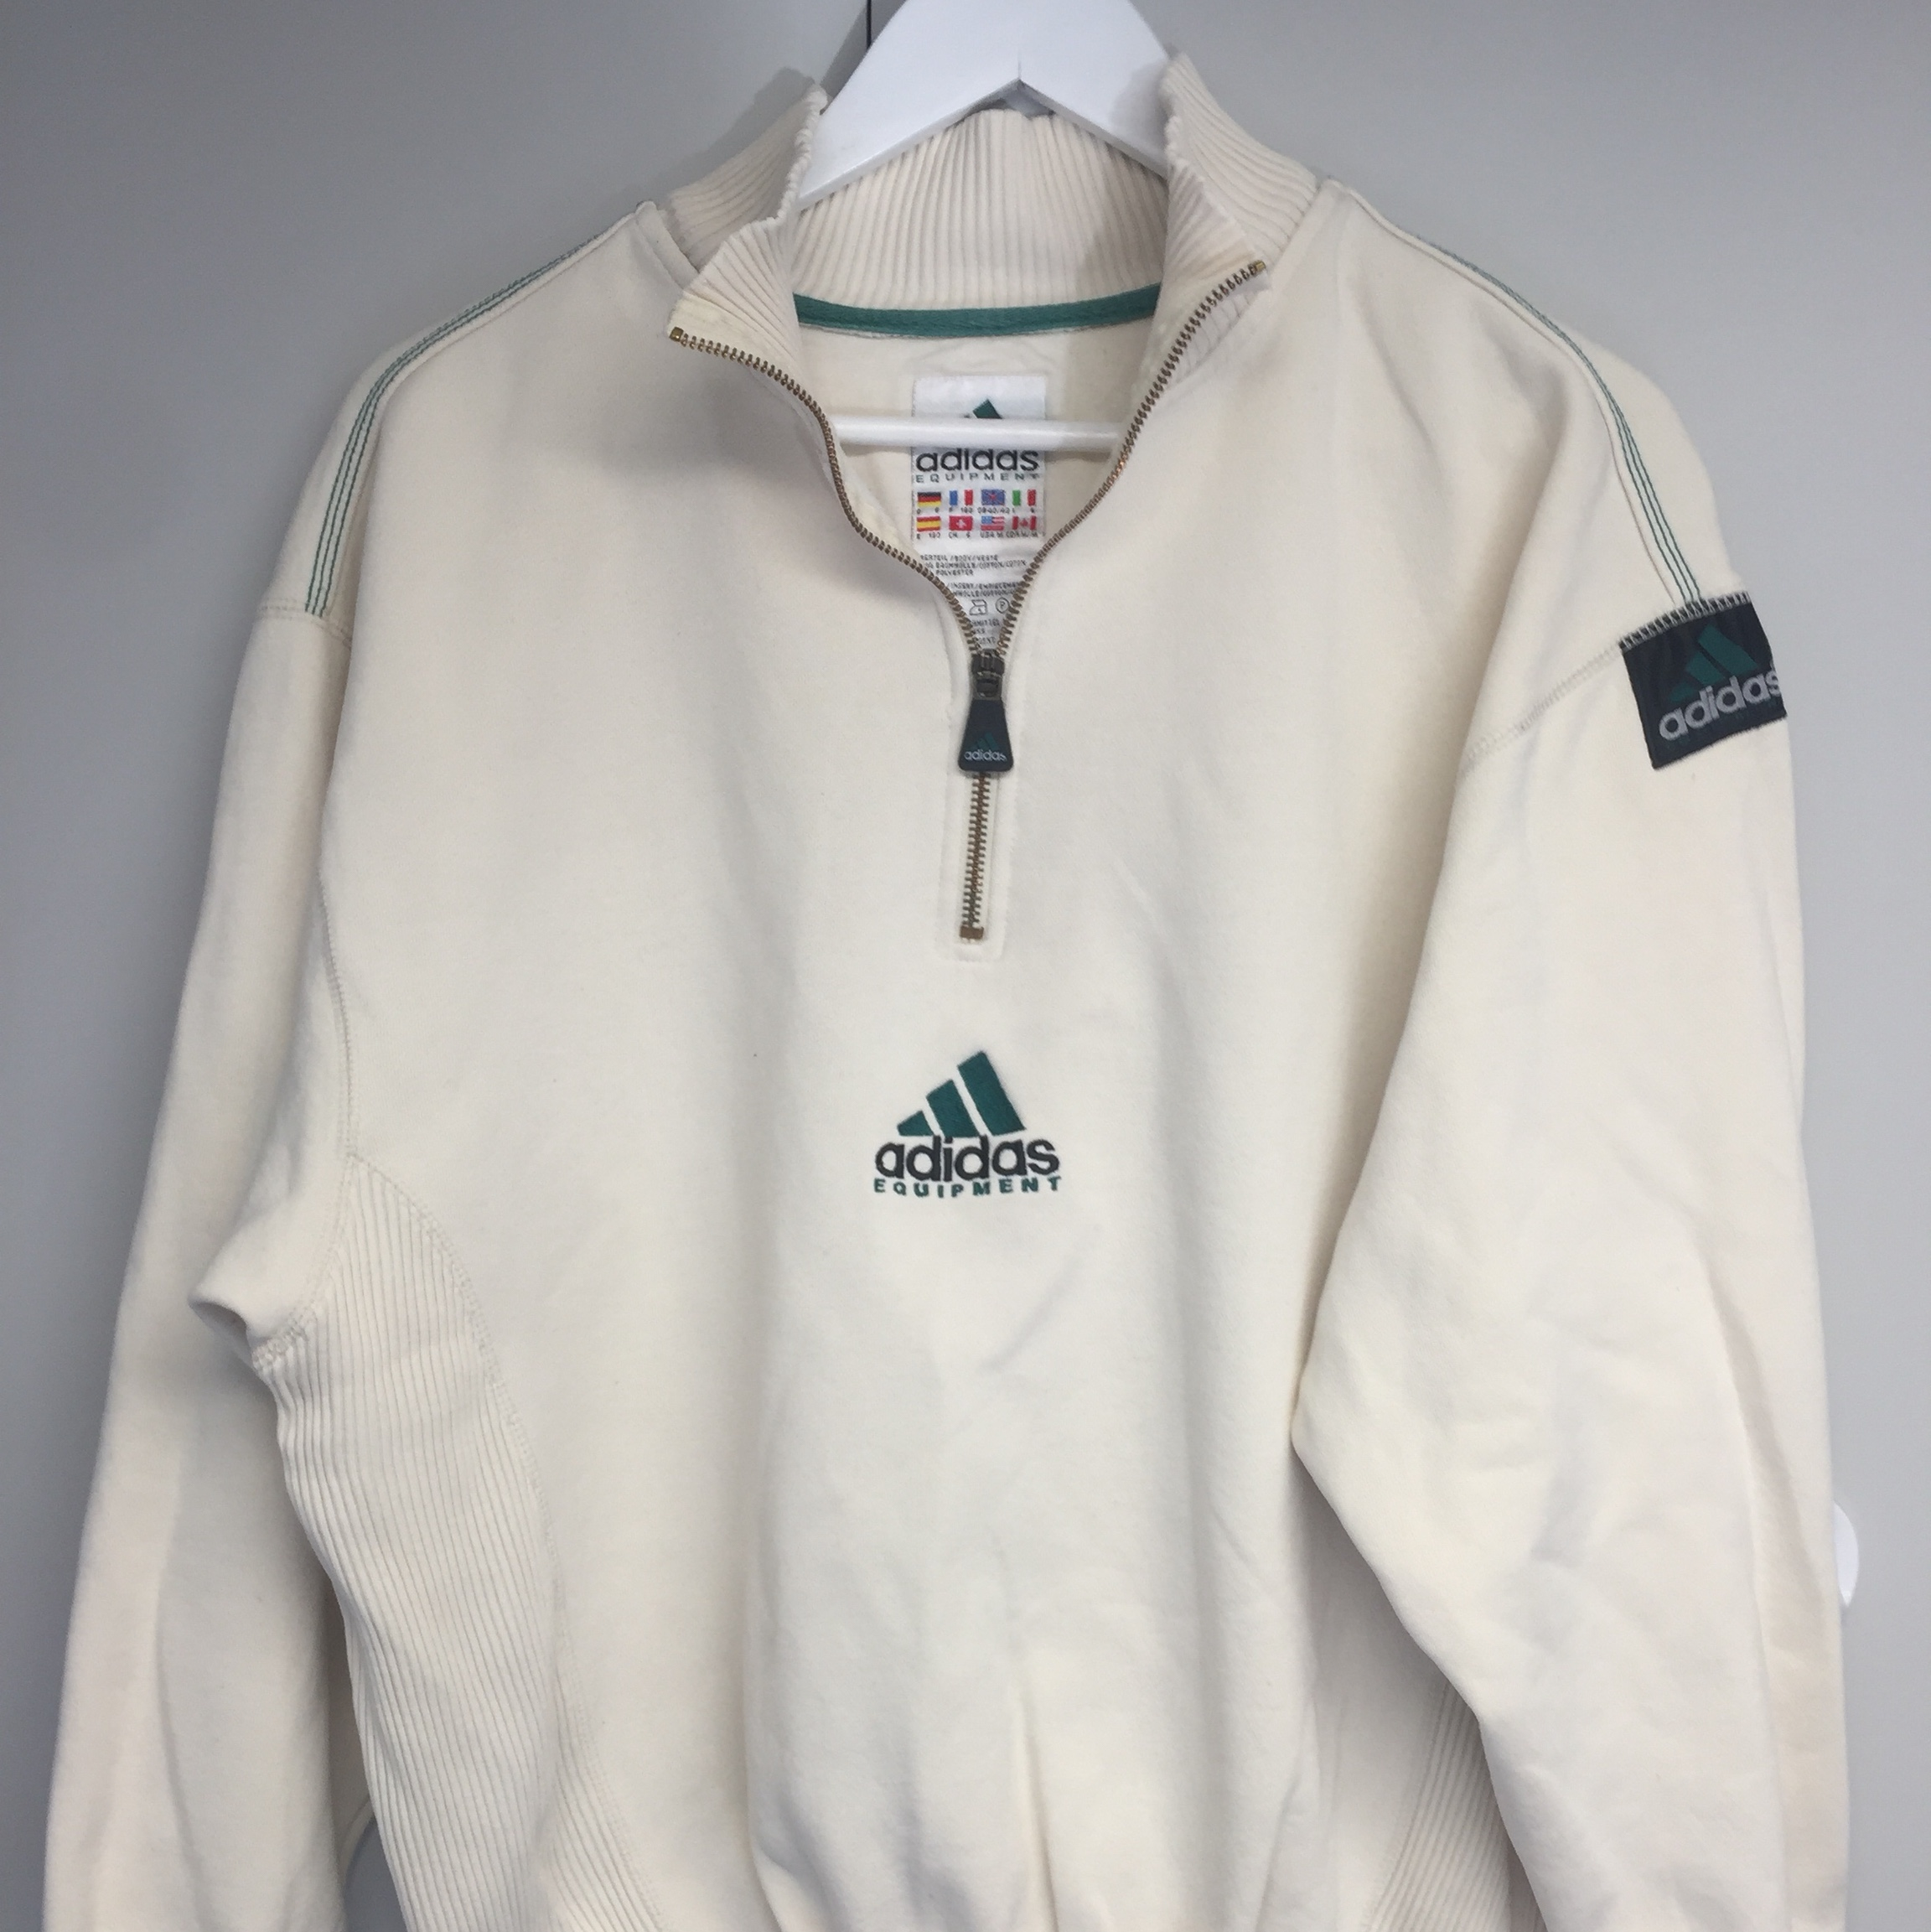 Rare vintage Adidas Equipment 14 zip Depop